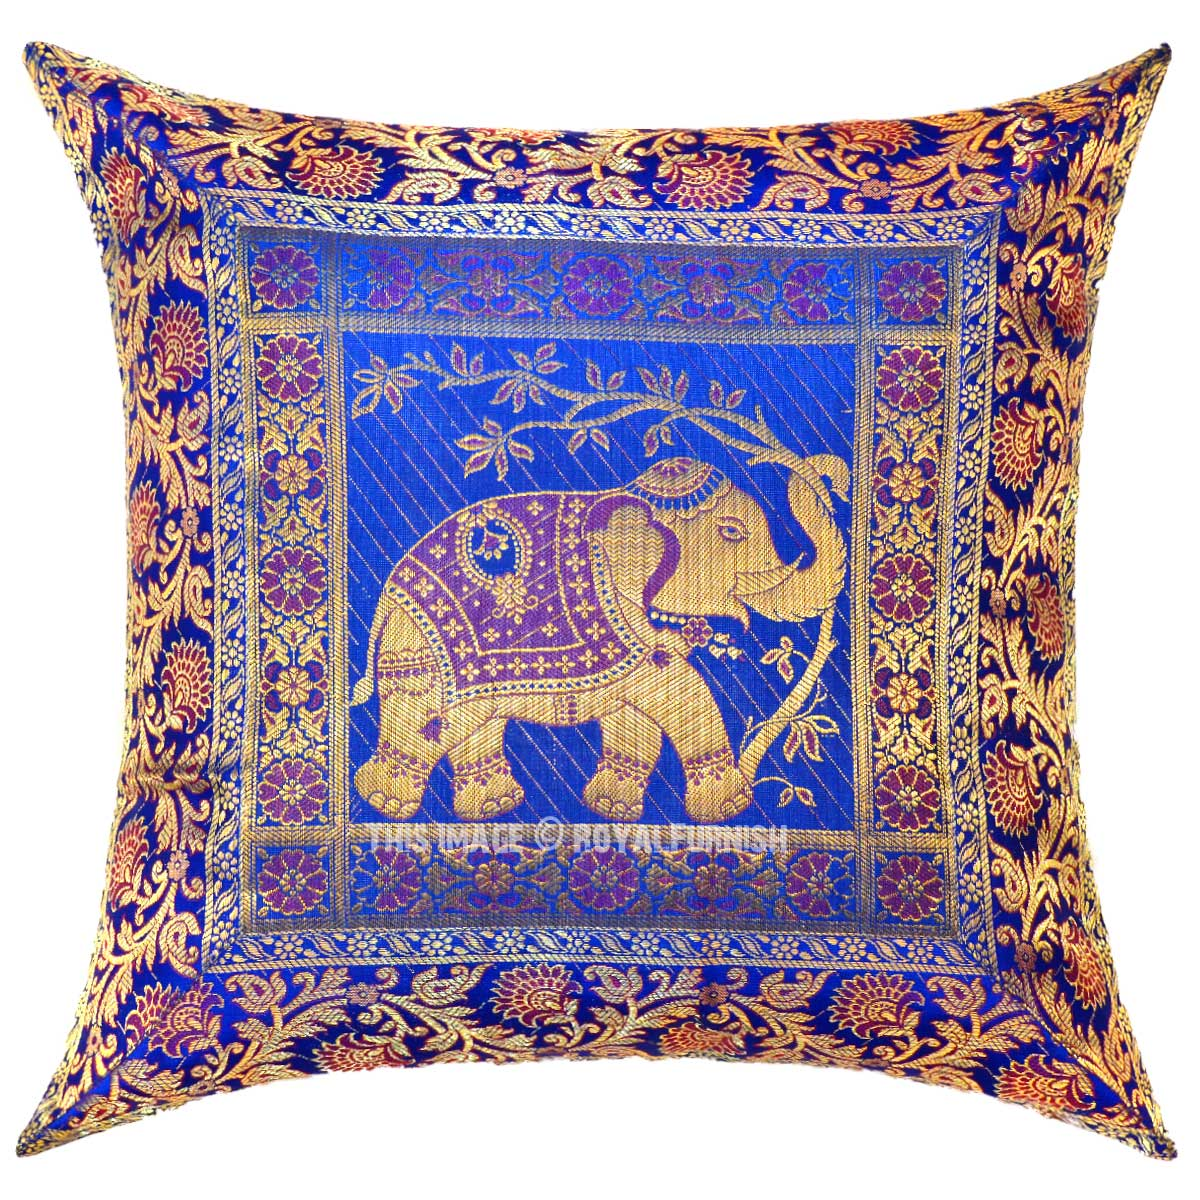 Blue Elephant Holding Tree Featuring Silk Throw Pillow